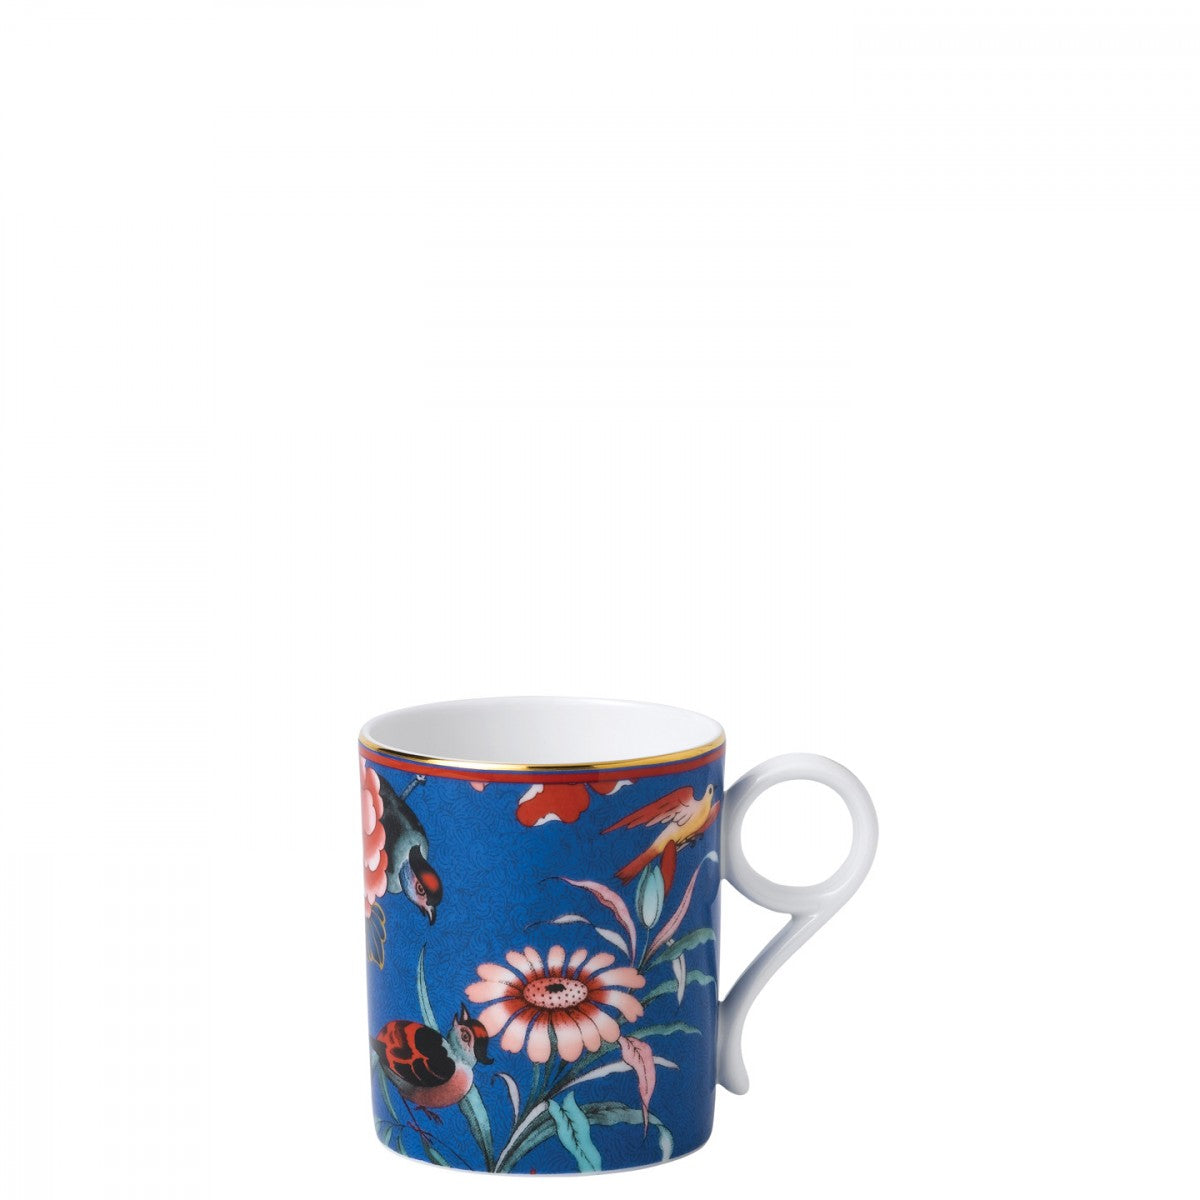 Paeonia Blush Mug Blue